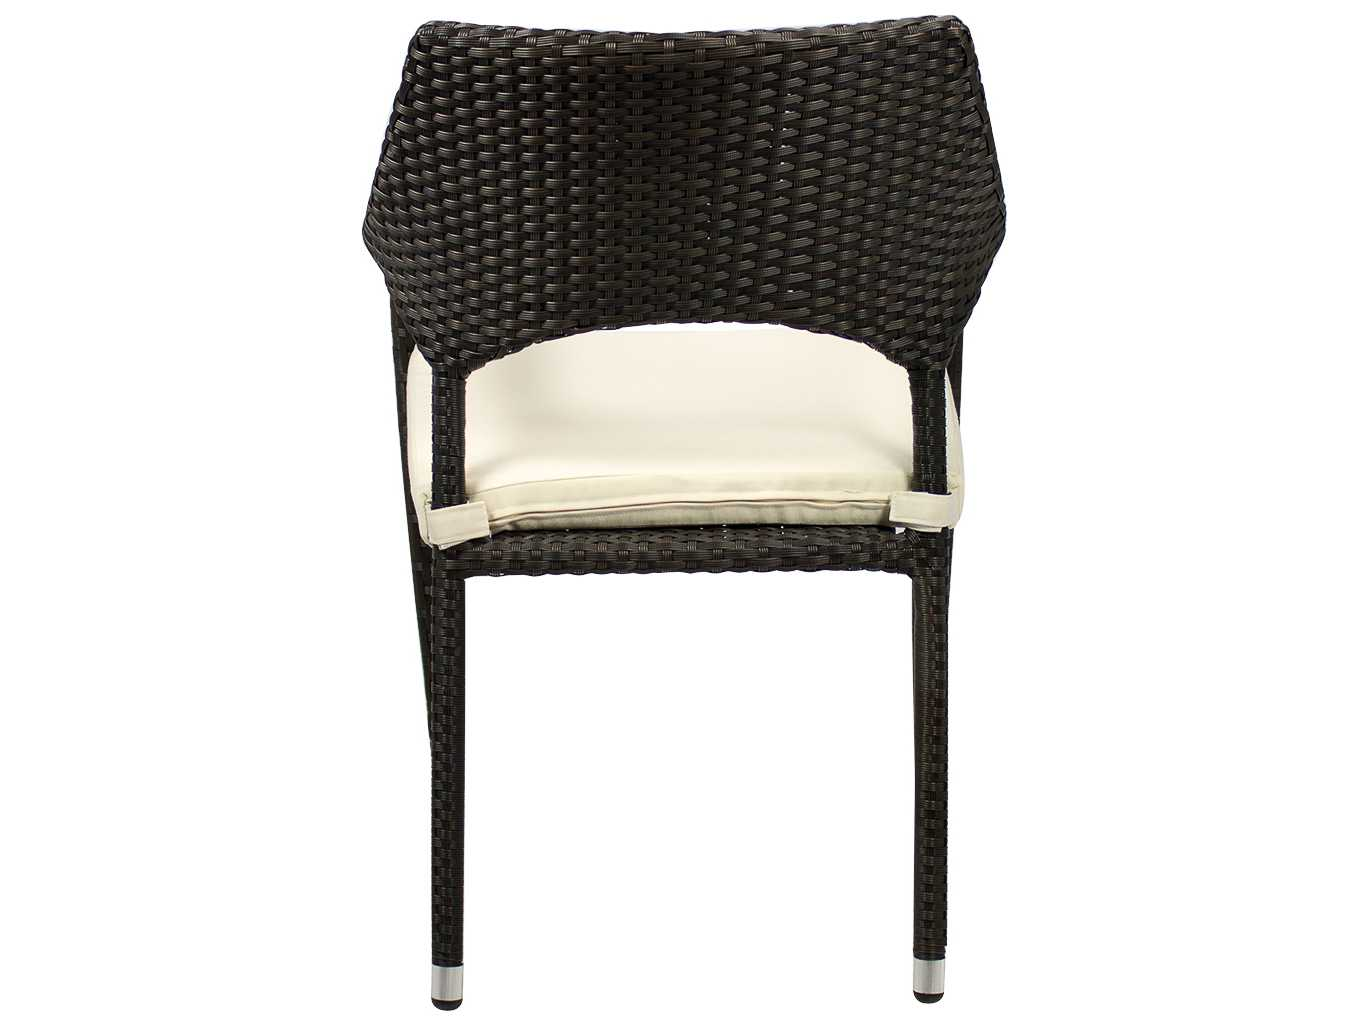 Source Outdoor Furniture Tuscanna Wicker Bistro Chair